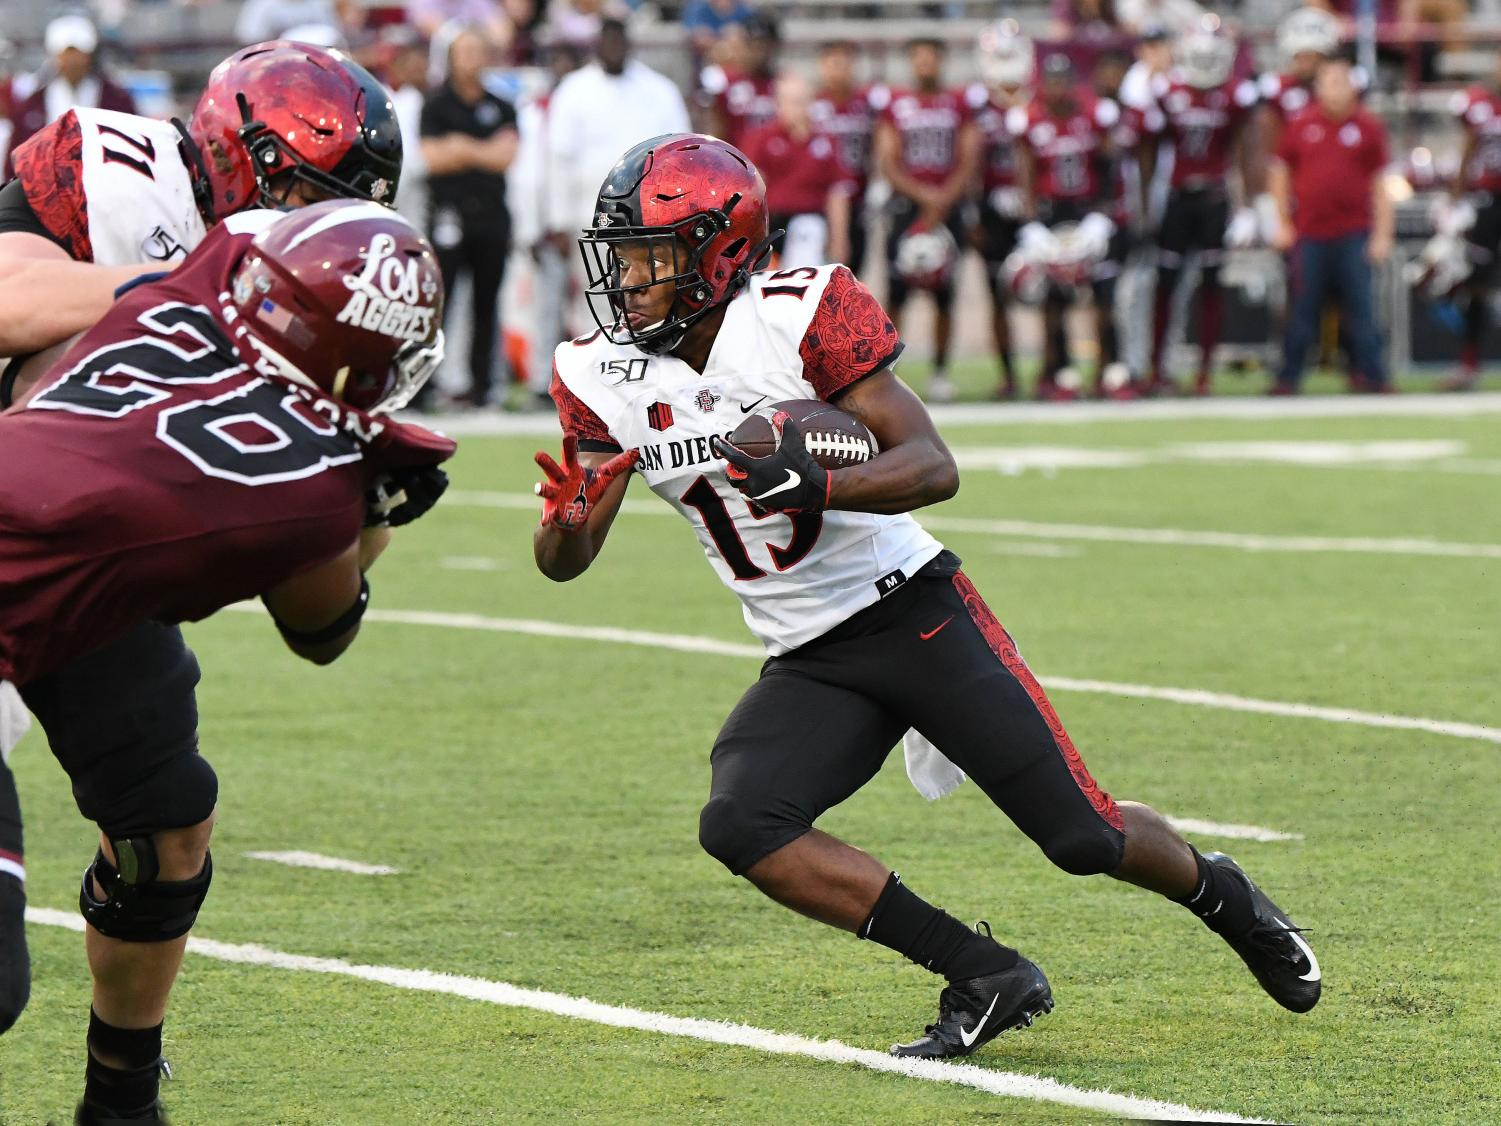 Sophomore running back Jordan Byrd cuts upfield during the Aztecs' 31-10 win over New Mexico State on Sept. 14 at Aggie Memorial Stadium.